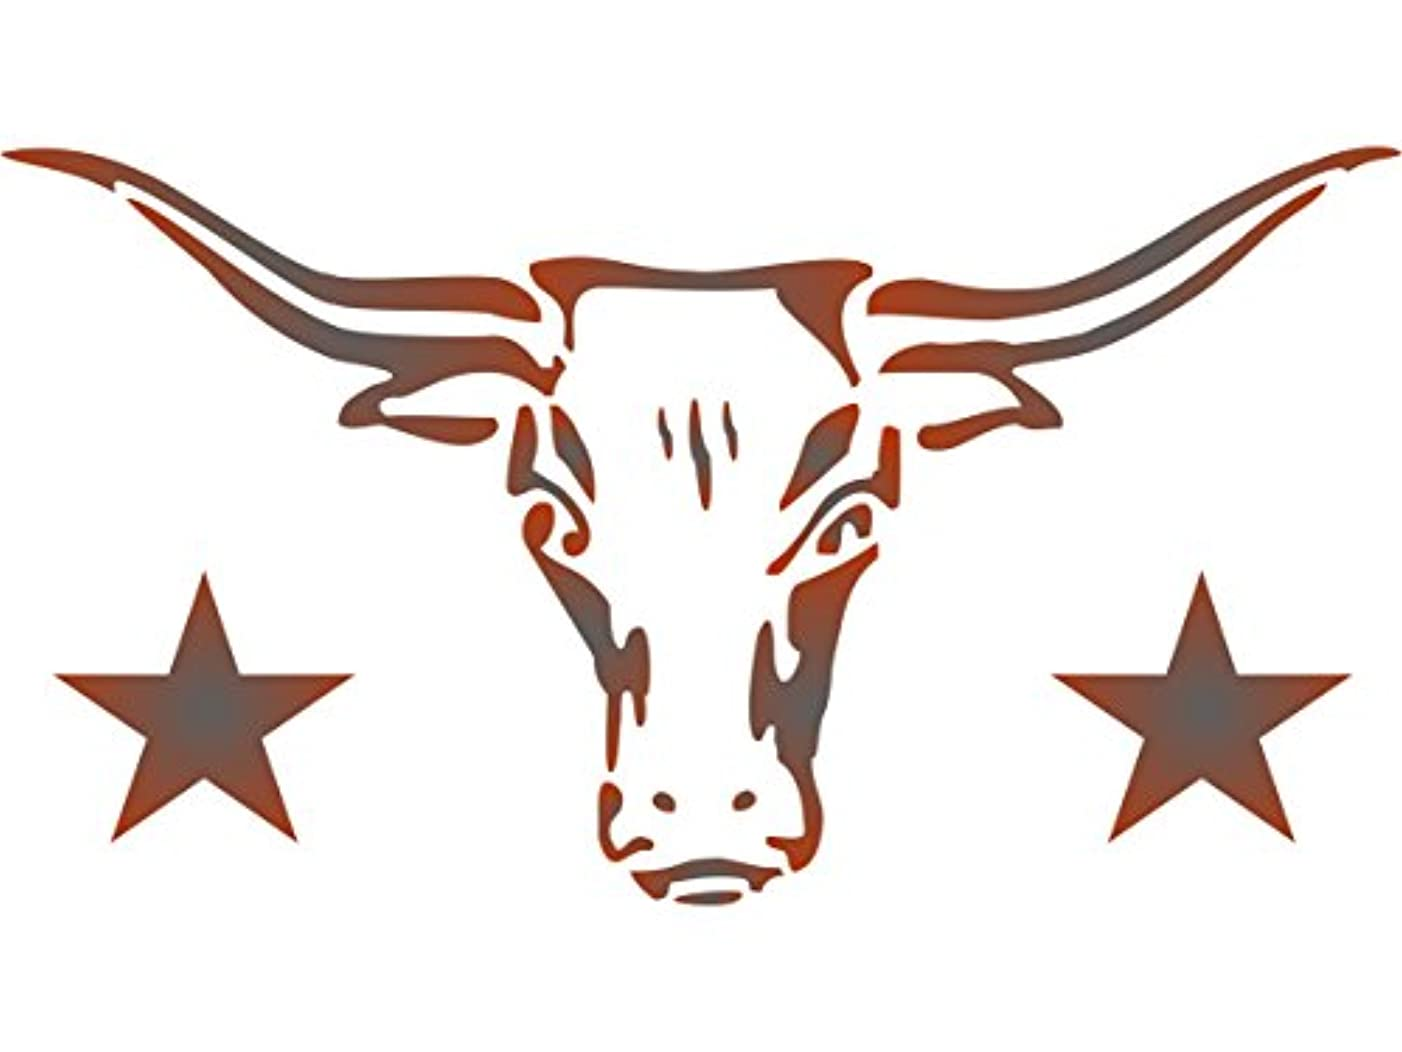 """Longhorn Stencil - (size 9.25""""w x 5""""h) - Reusable Cow Bull Skull Texas Farm Animal Stencils for Painting - Use on Paper Projects Scrapbook Journal Walls Floors Fabric Furniture Glass Wood etc."""